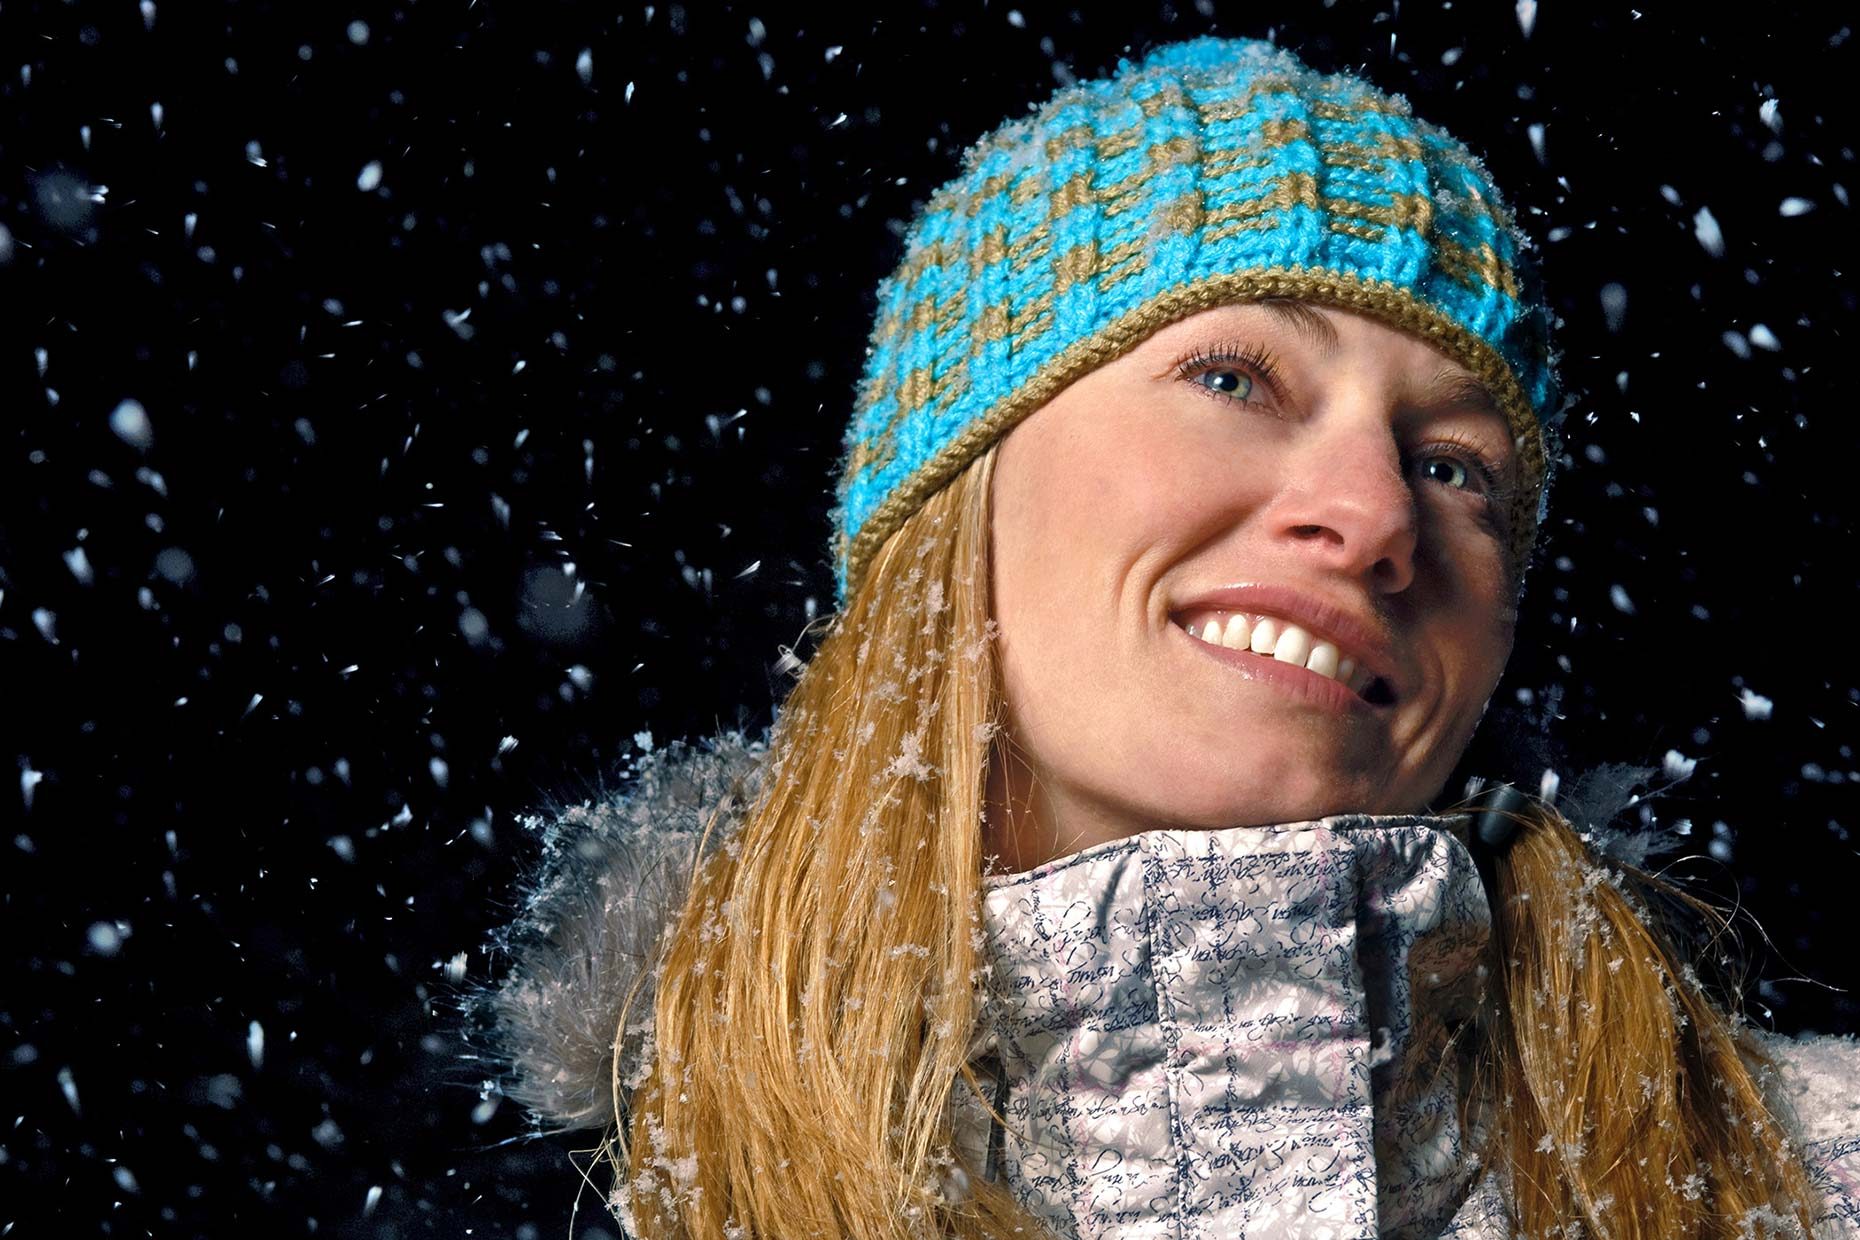 Ian-Coble-Portrait-Location-Snow-Winter-Womens-Outerwear